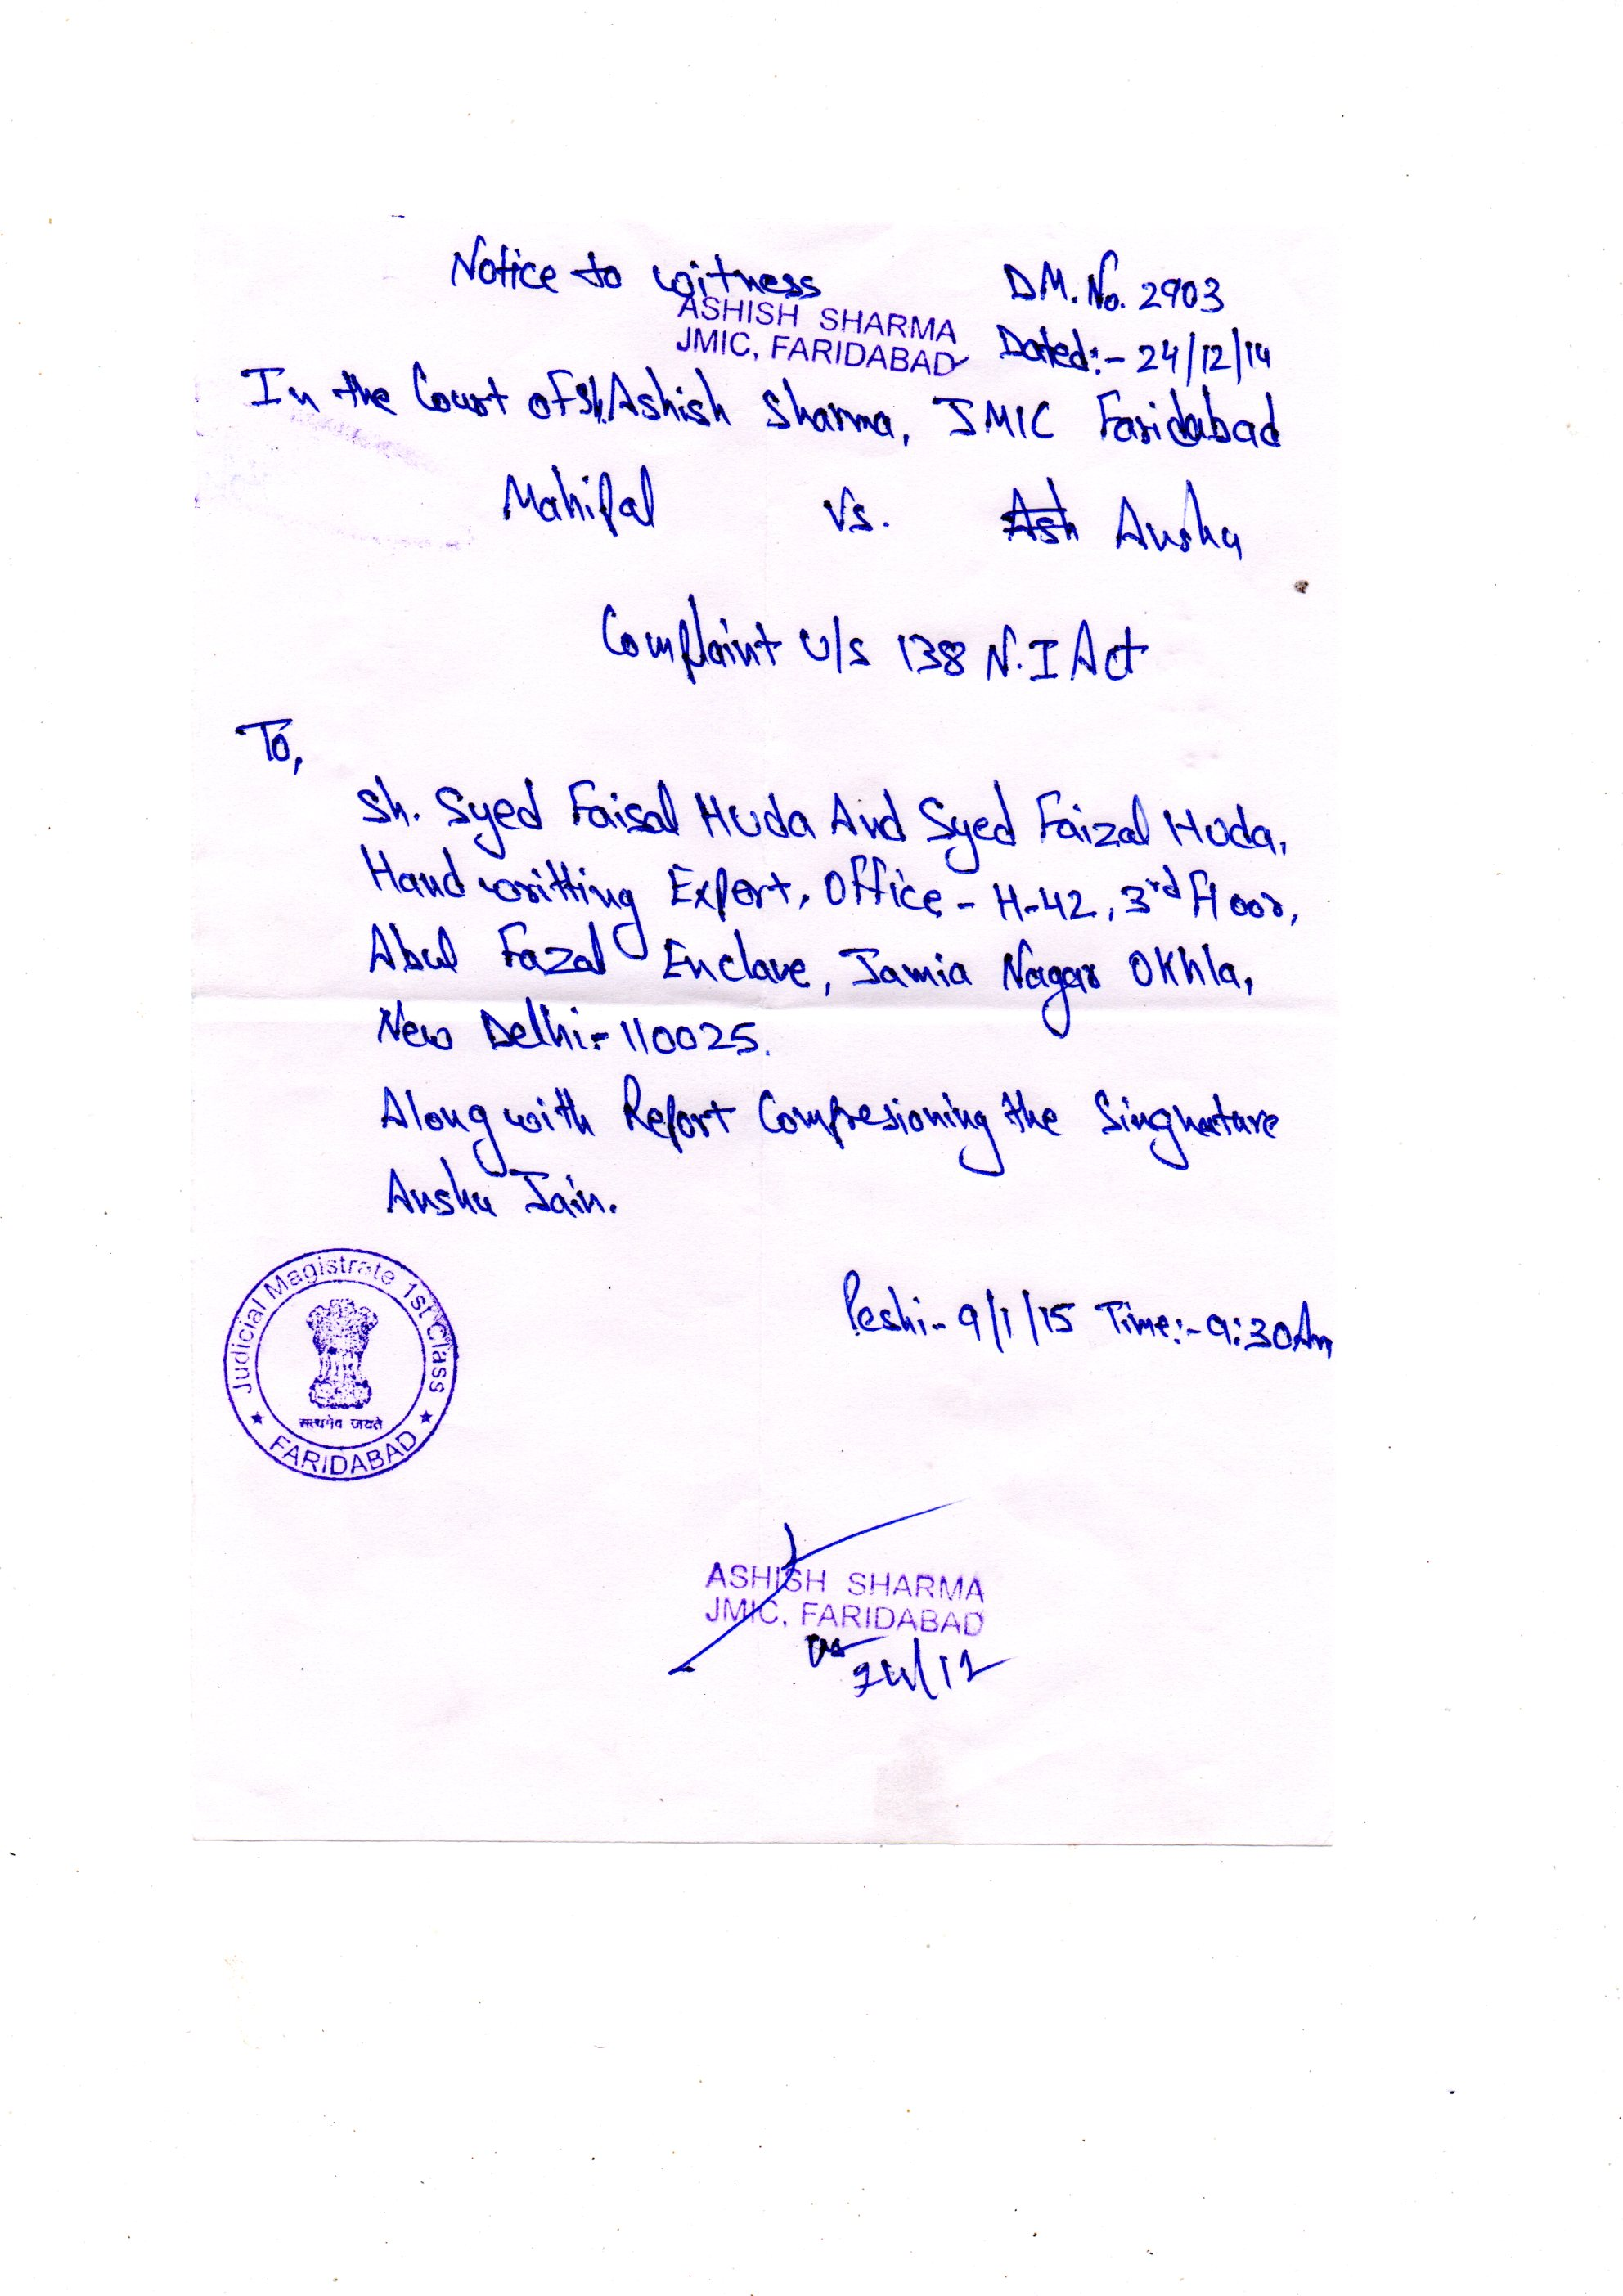 SUMMON 1 FROM THE COURT OF SH. ASHISH SHARMA(JMIC), FARIDABAD